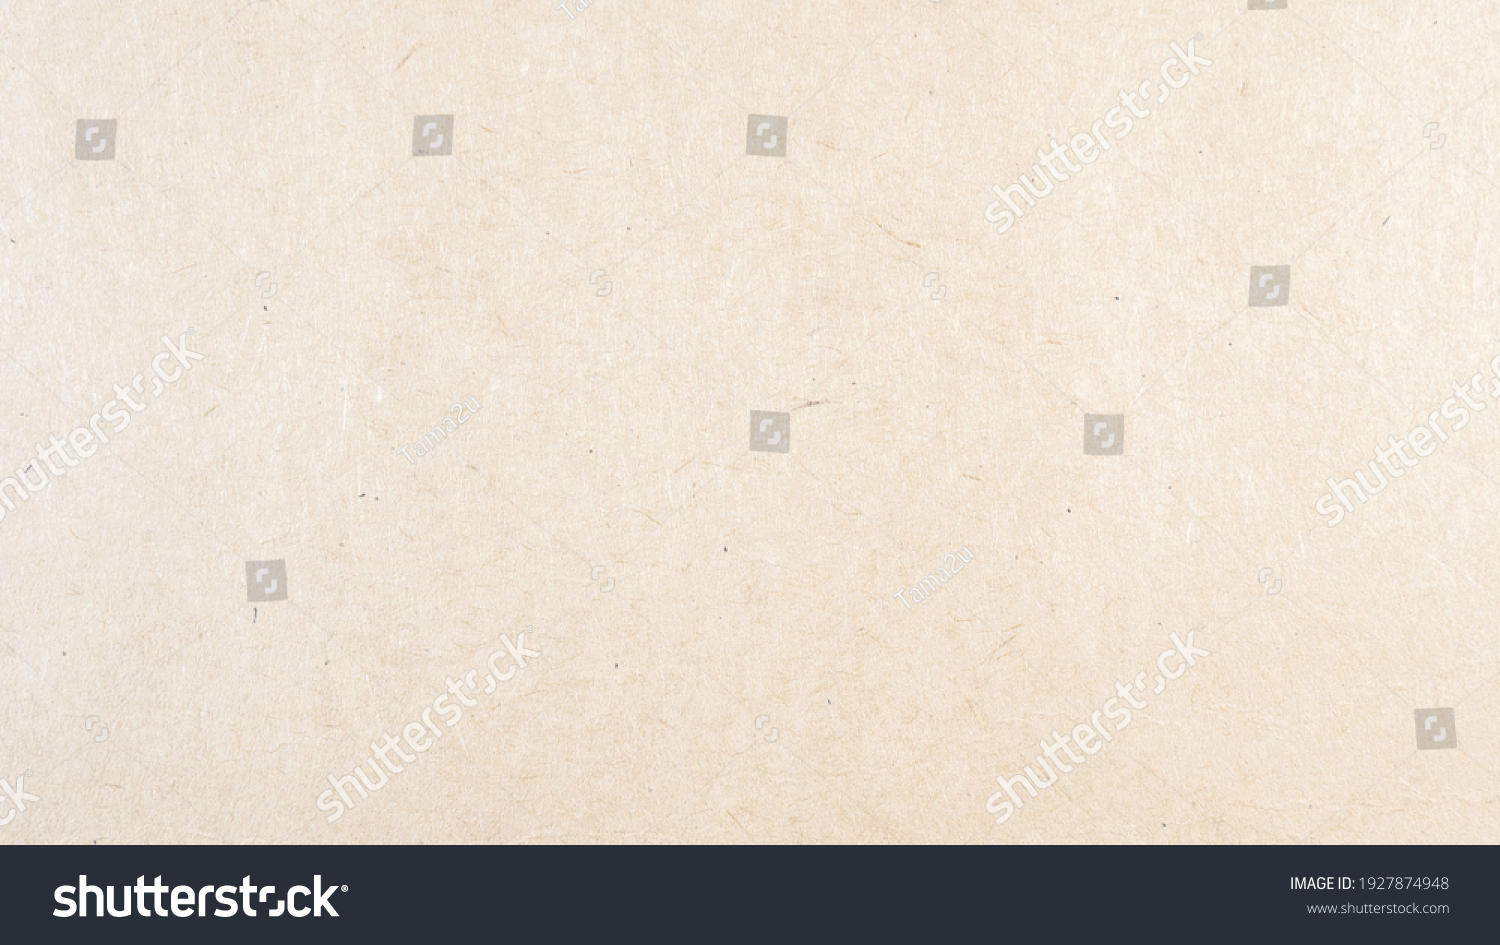 Abstract brown recycled paper texture background. Old Kraft paper box craft pattern. top view. #1927874948